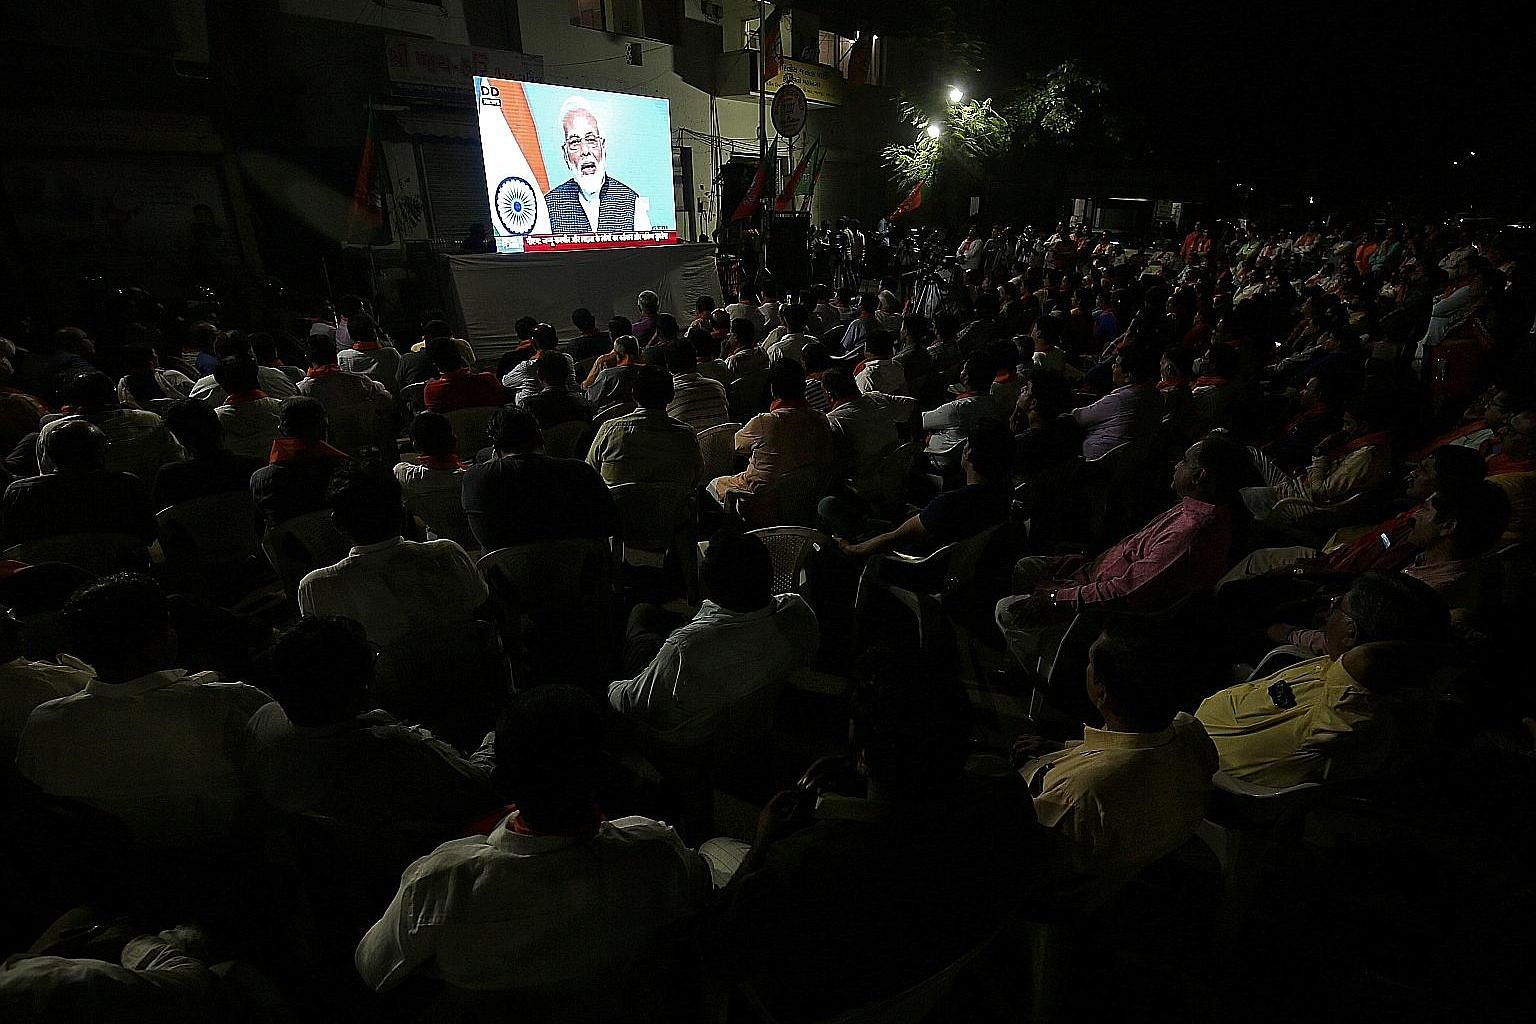 People watching a broadcast of Prime Minister Narendra Modi delivering his televised address to the nation in Ahmedabad, India, yesterday. The decision to withdraw Jammu and Kashmir's special status and bifurcate the state has had domestic and intern